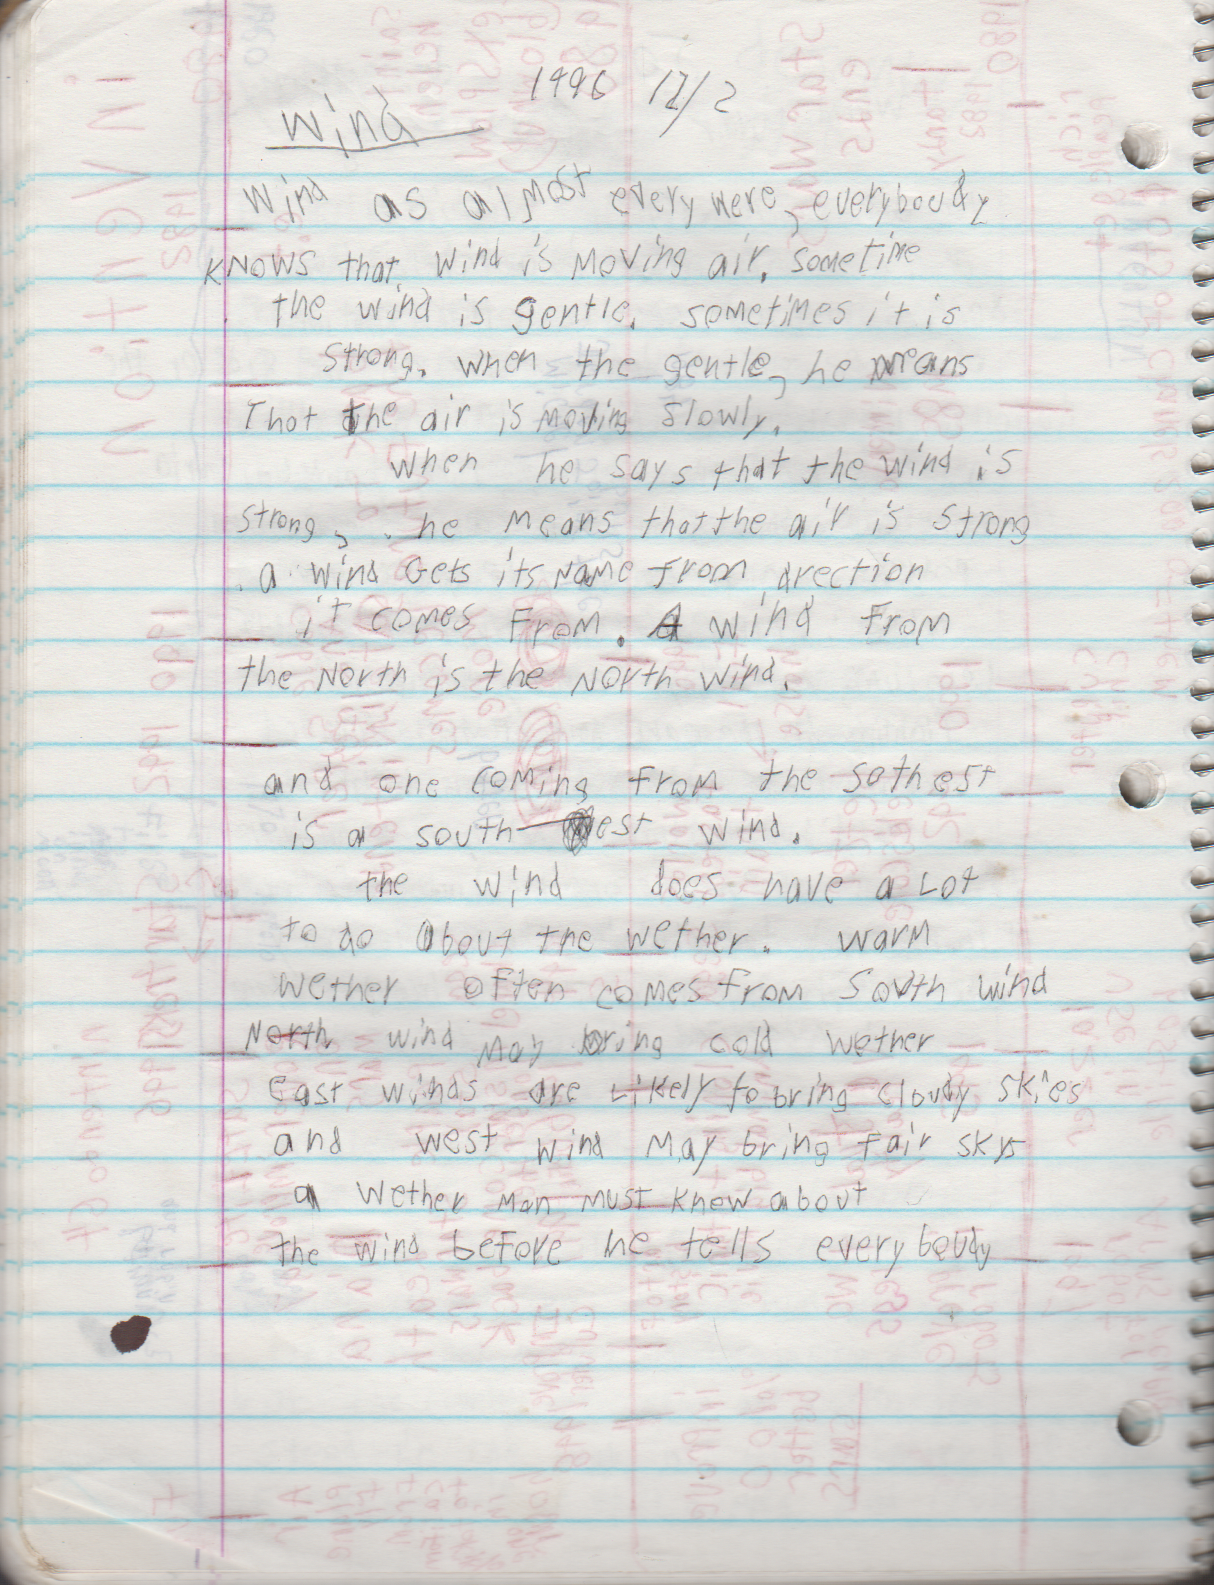 1996-08-18 - Saturday - 11 yr old Joey Arnold's School Book, dates through to 1998 apx, mostly 96, Writings, Drawings, Etc-081.png